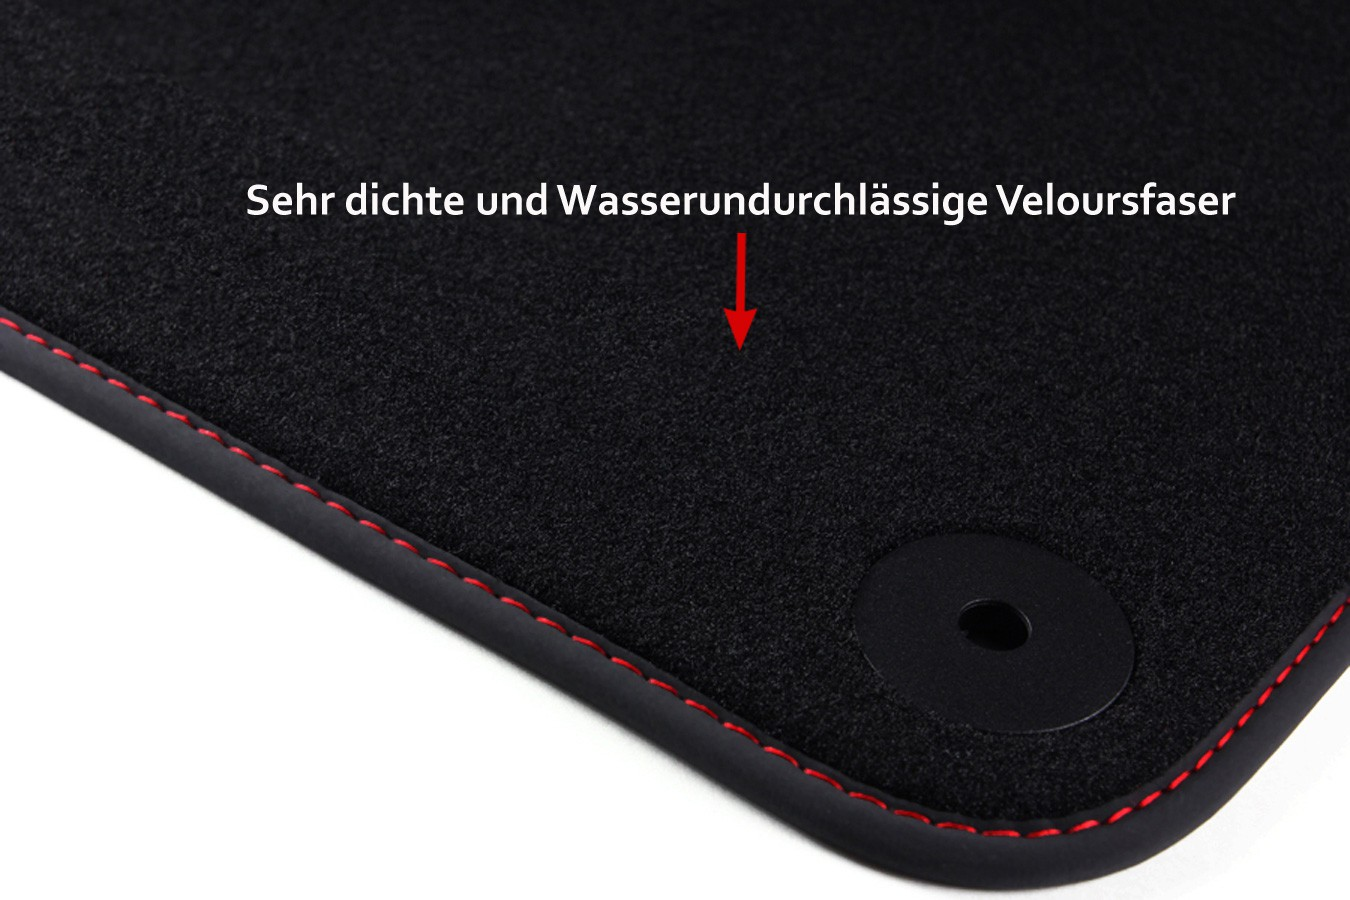 tapis de sol de voitures hiver set seat exeo 2009 2013 tapis de voiture pour seat tapis de sol. Black Bedroom Furniture Sets. Home Design Ideas